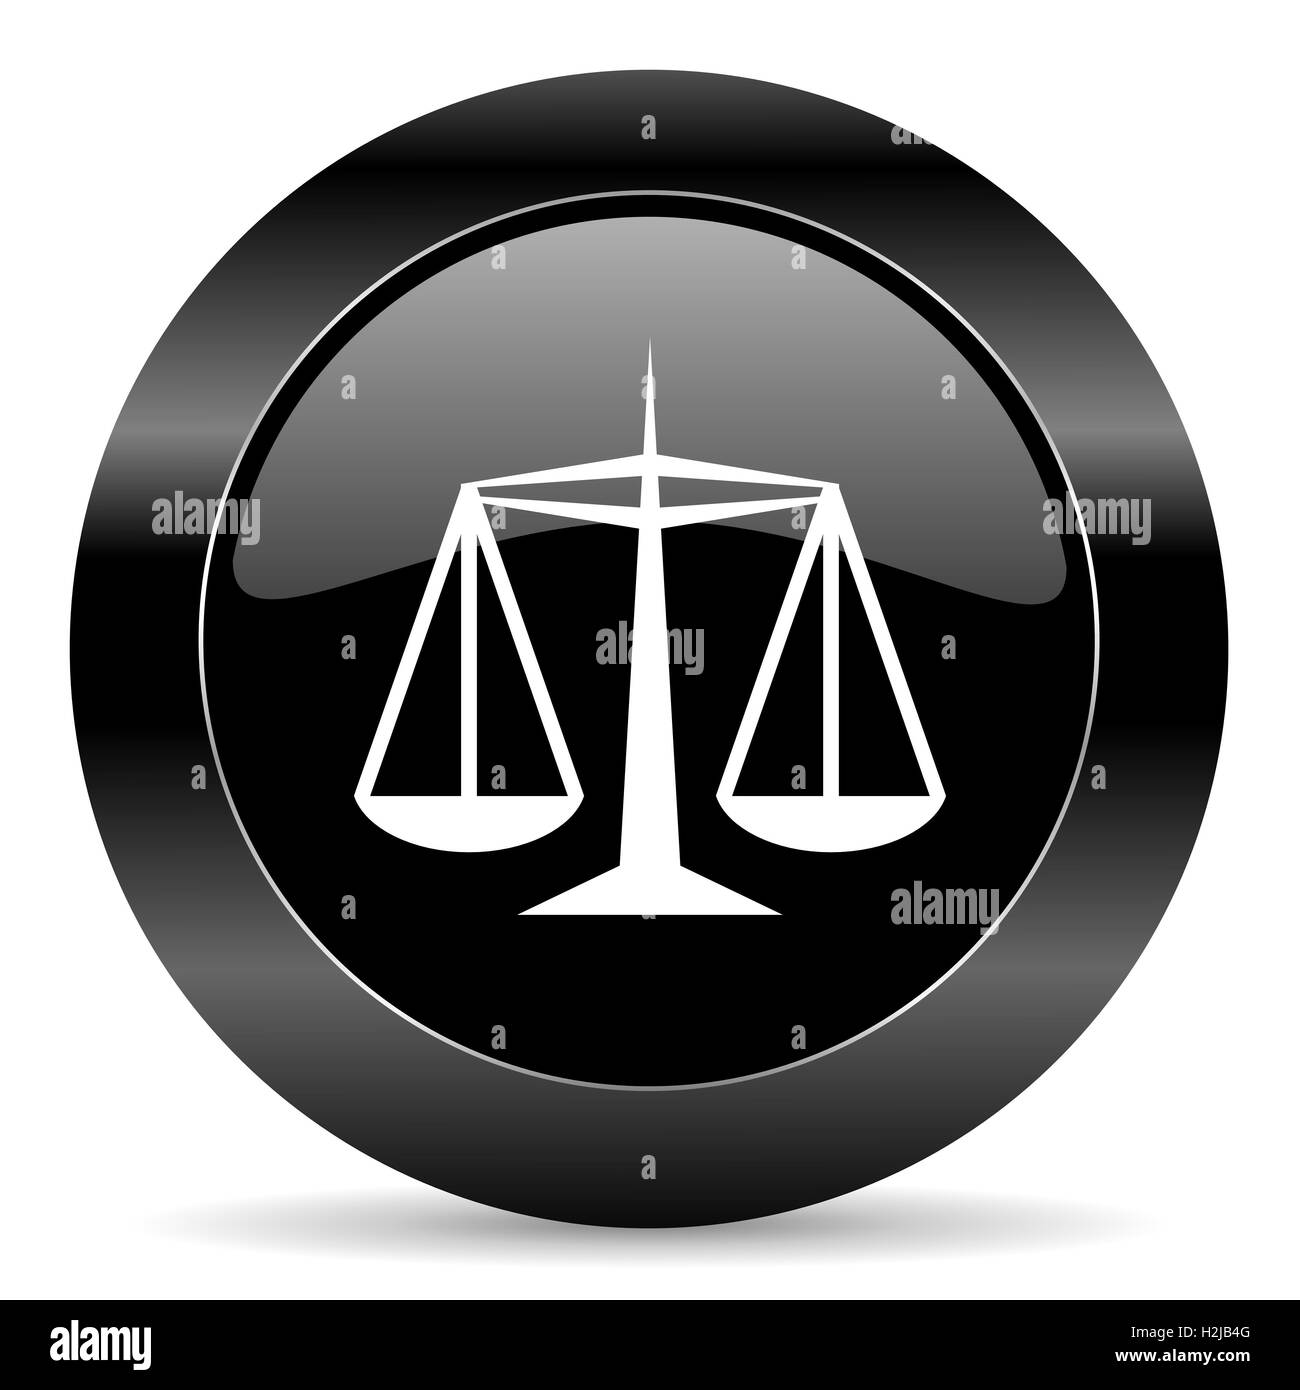 justice icon - Stock Image